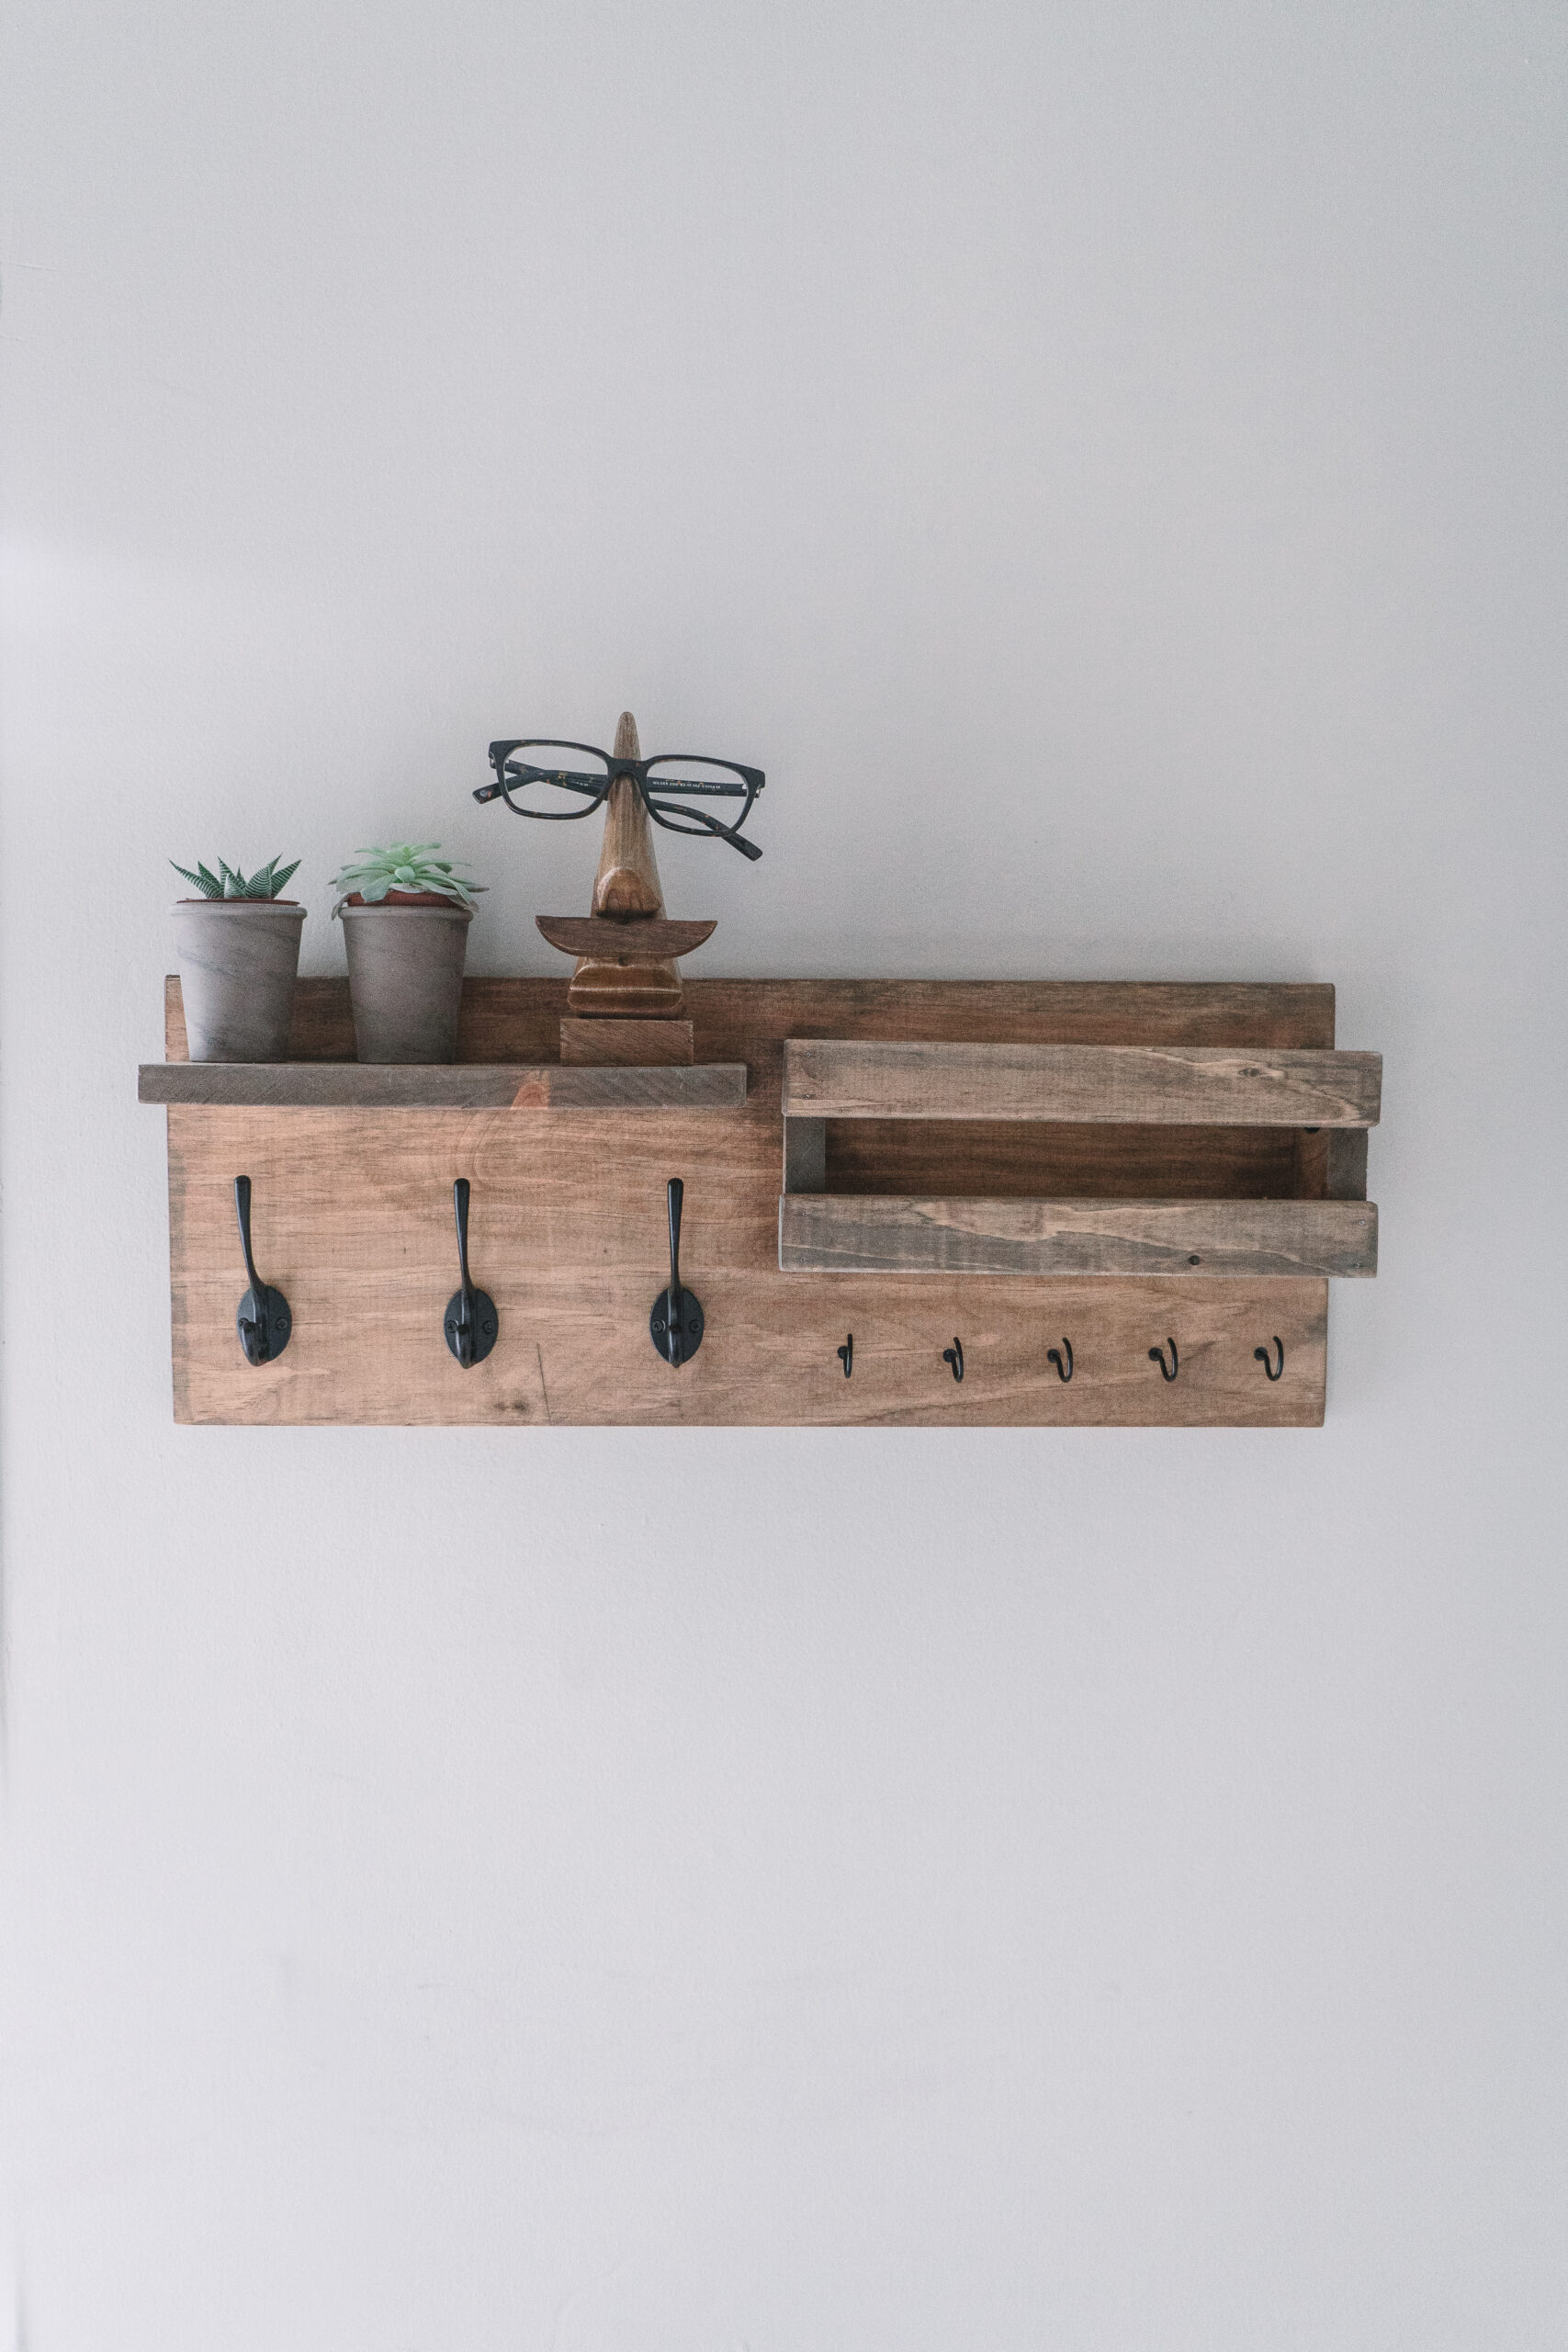 diy entryway organizer shelf